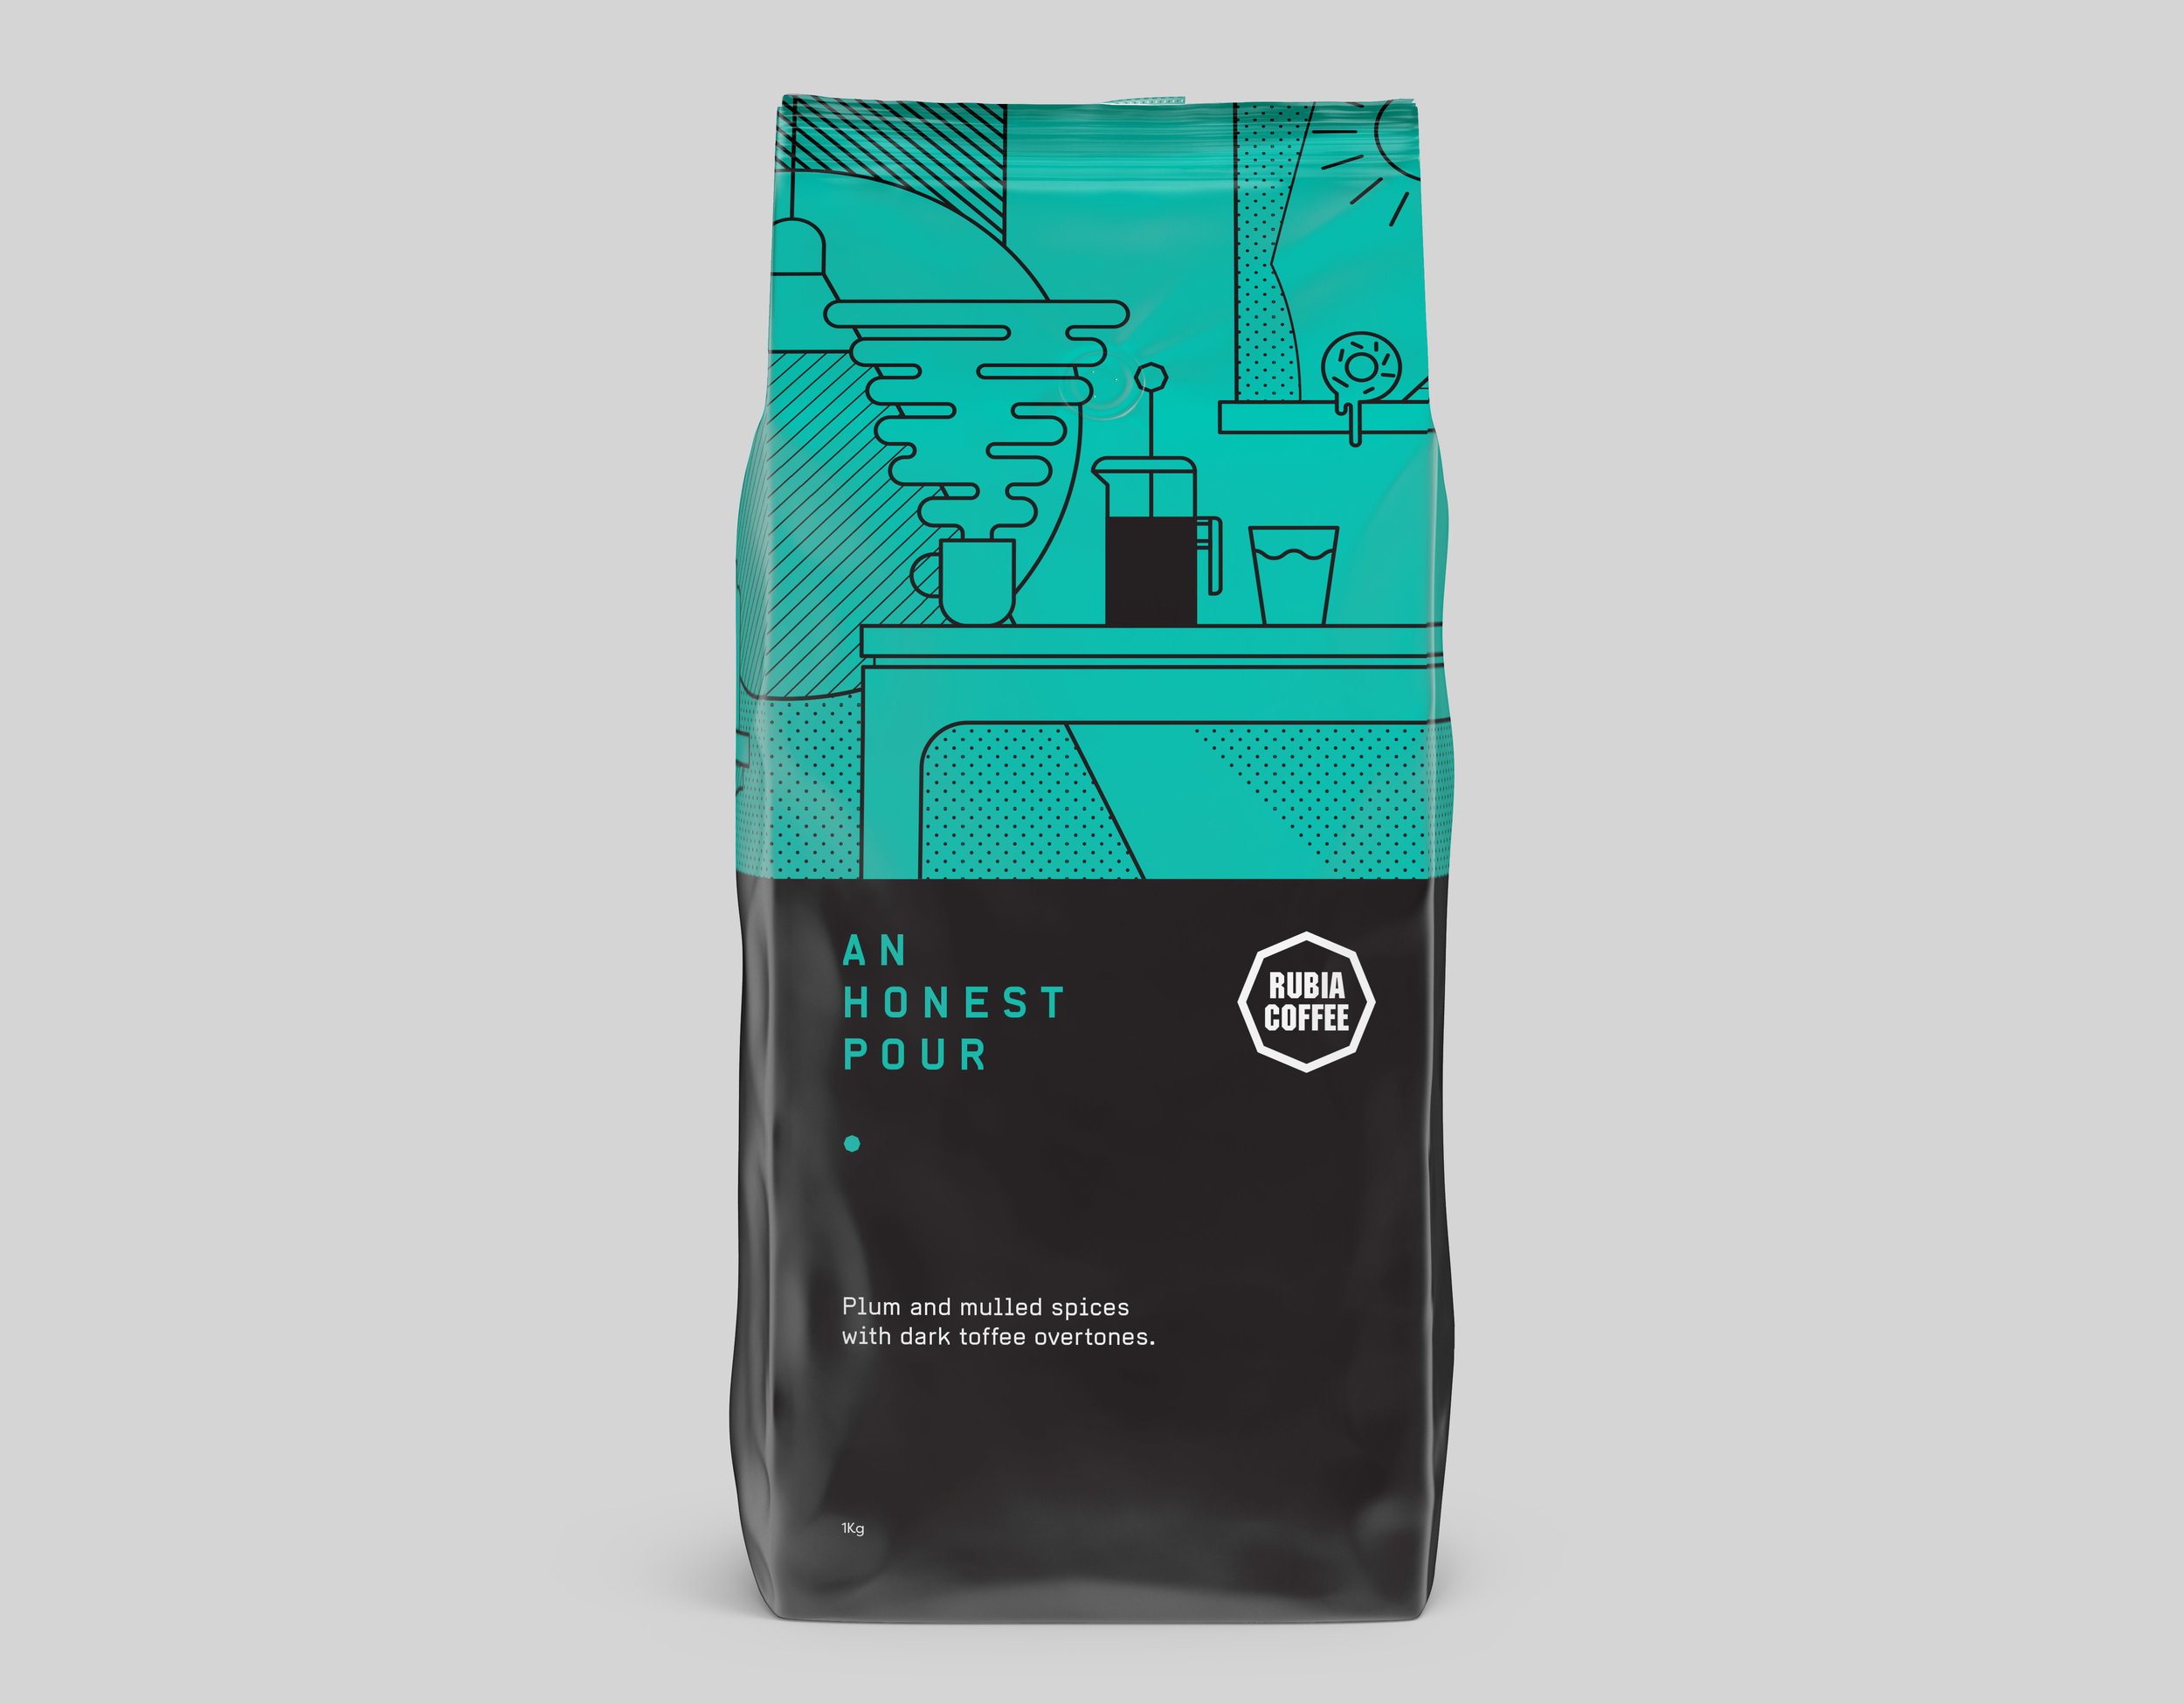 Rubia Coffee An Honest Pour packaging design Graphic design melbourne, branding design melbourne, branding design, packaging design melbourne, design studio melbourne, graphic design